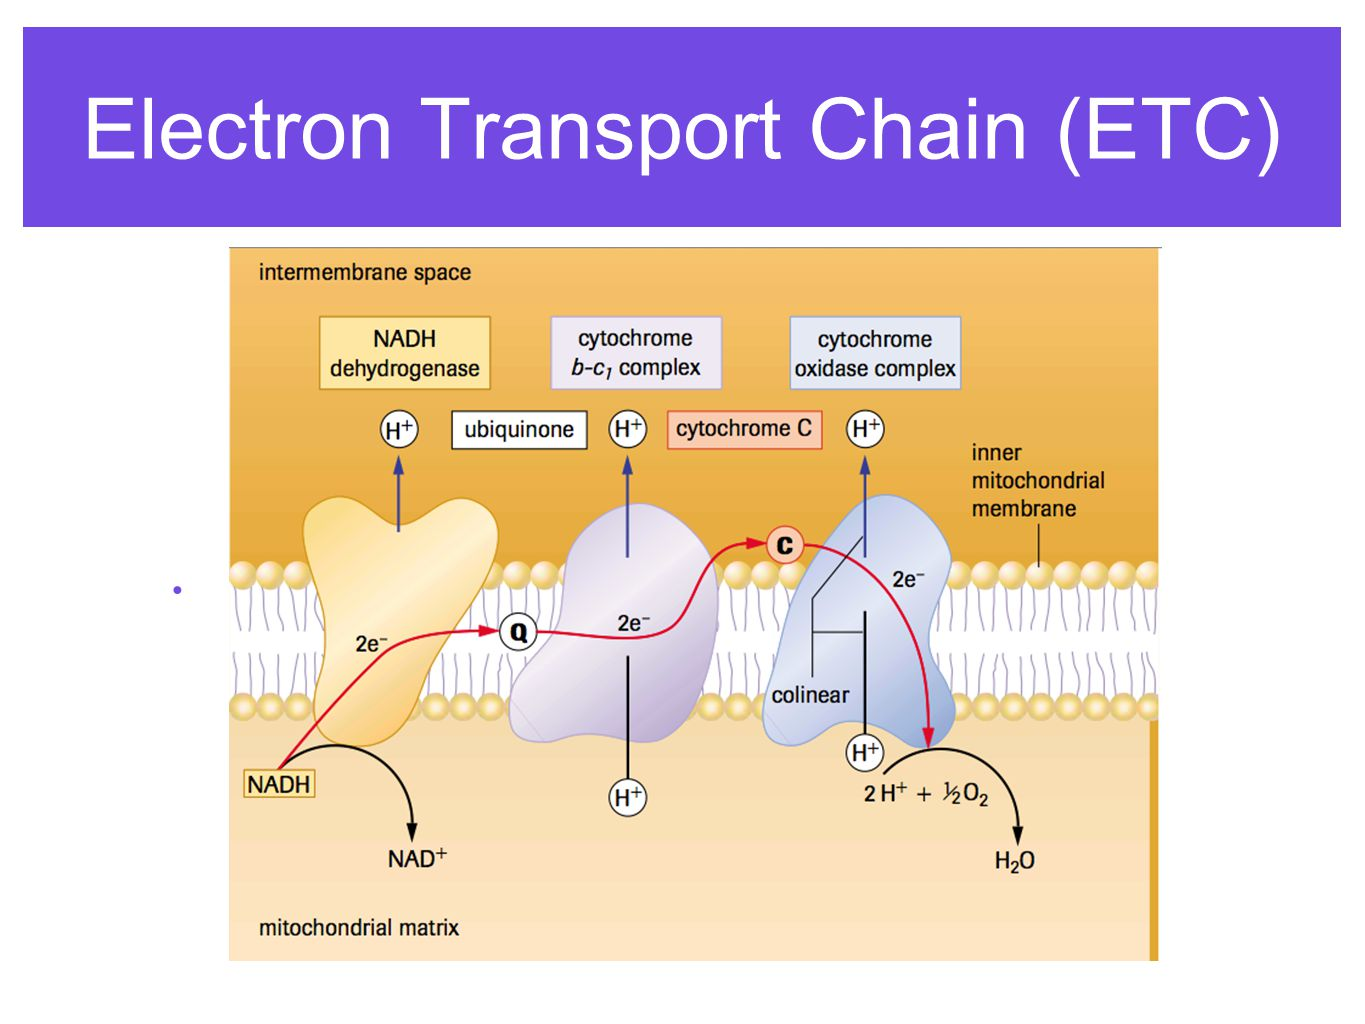 electron transport chain This animation of the electron transport chain (etc) is designed to show the major events for the sake of clarity the protein complexes in the membranes are shown as blobs and, compounds turn blue when they are reduced and red when oxidized.